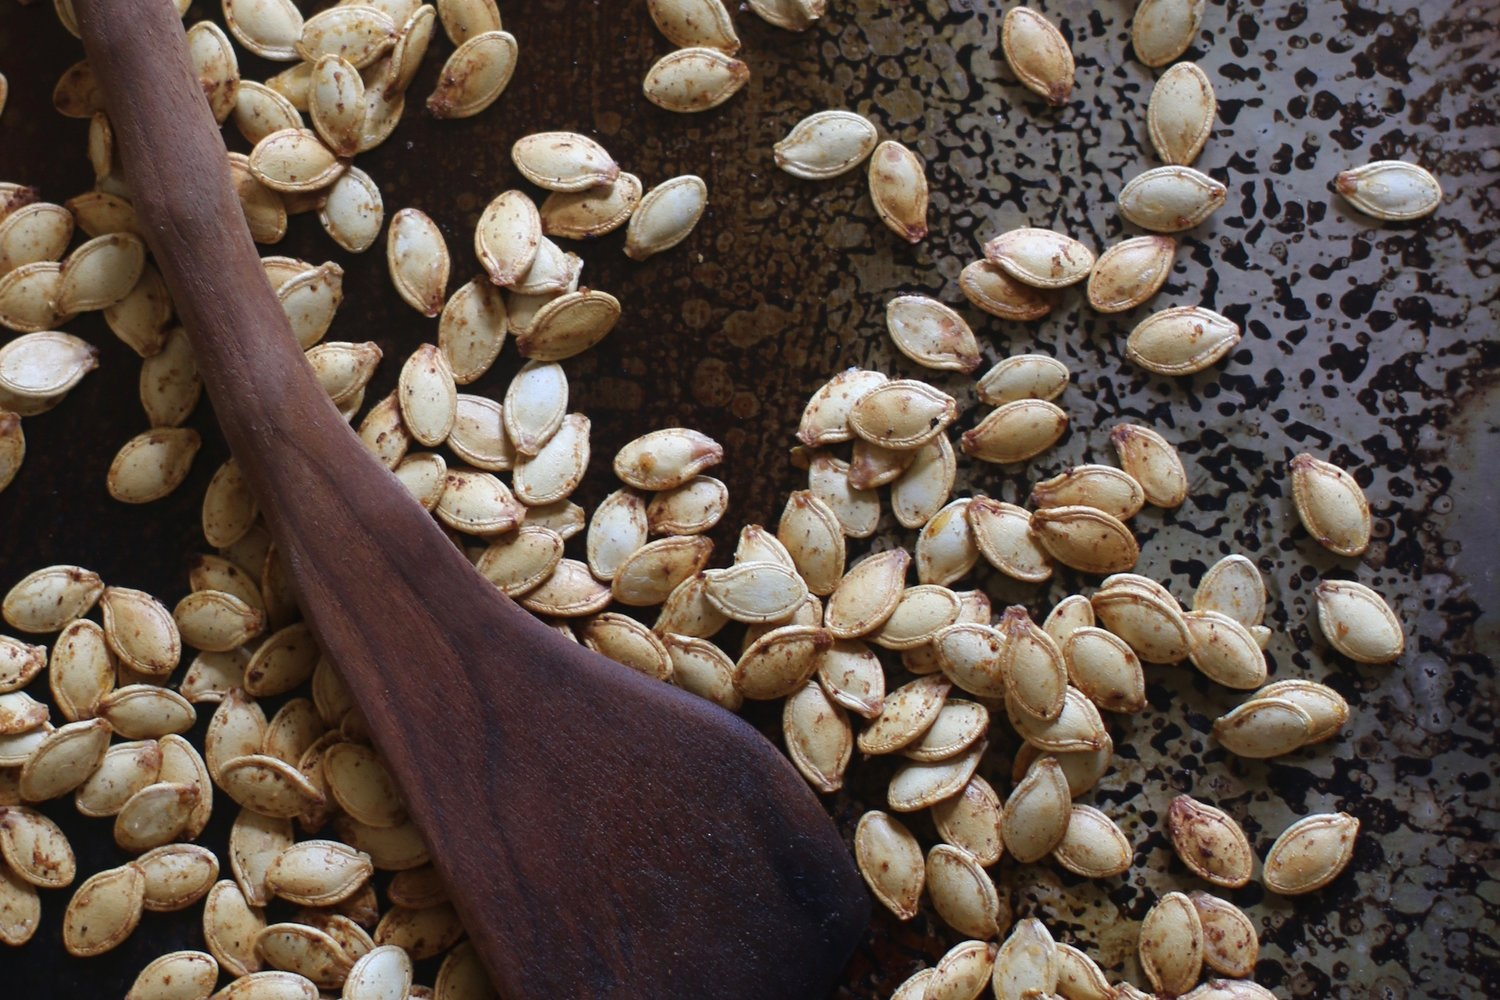 Looking for more Autumn recipes? - Click here for roasted pumpkin seeds and more…